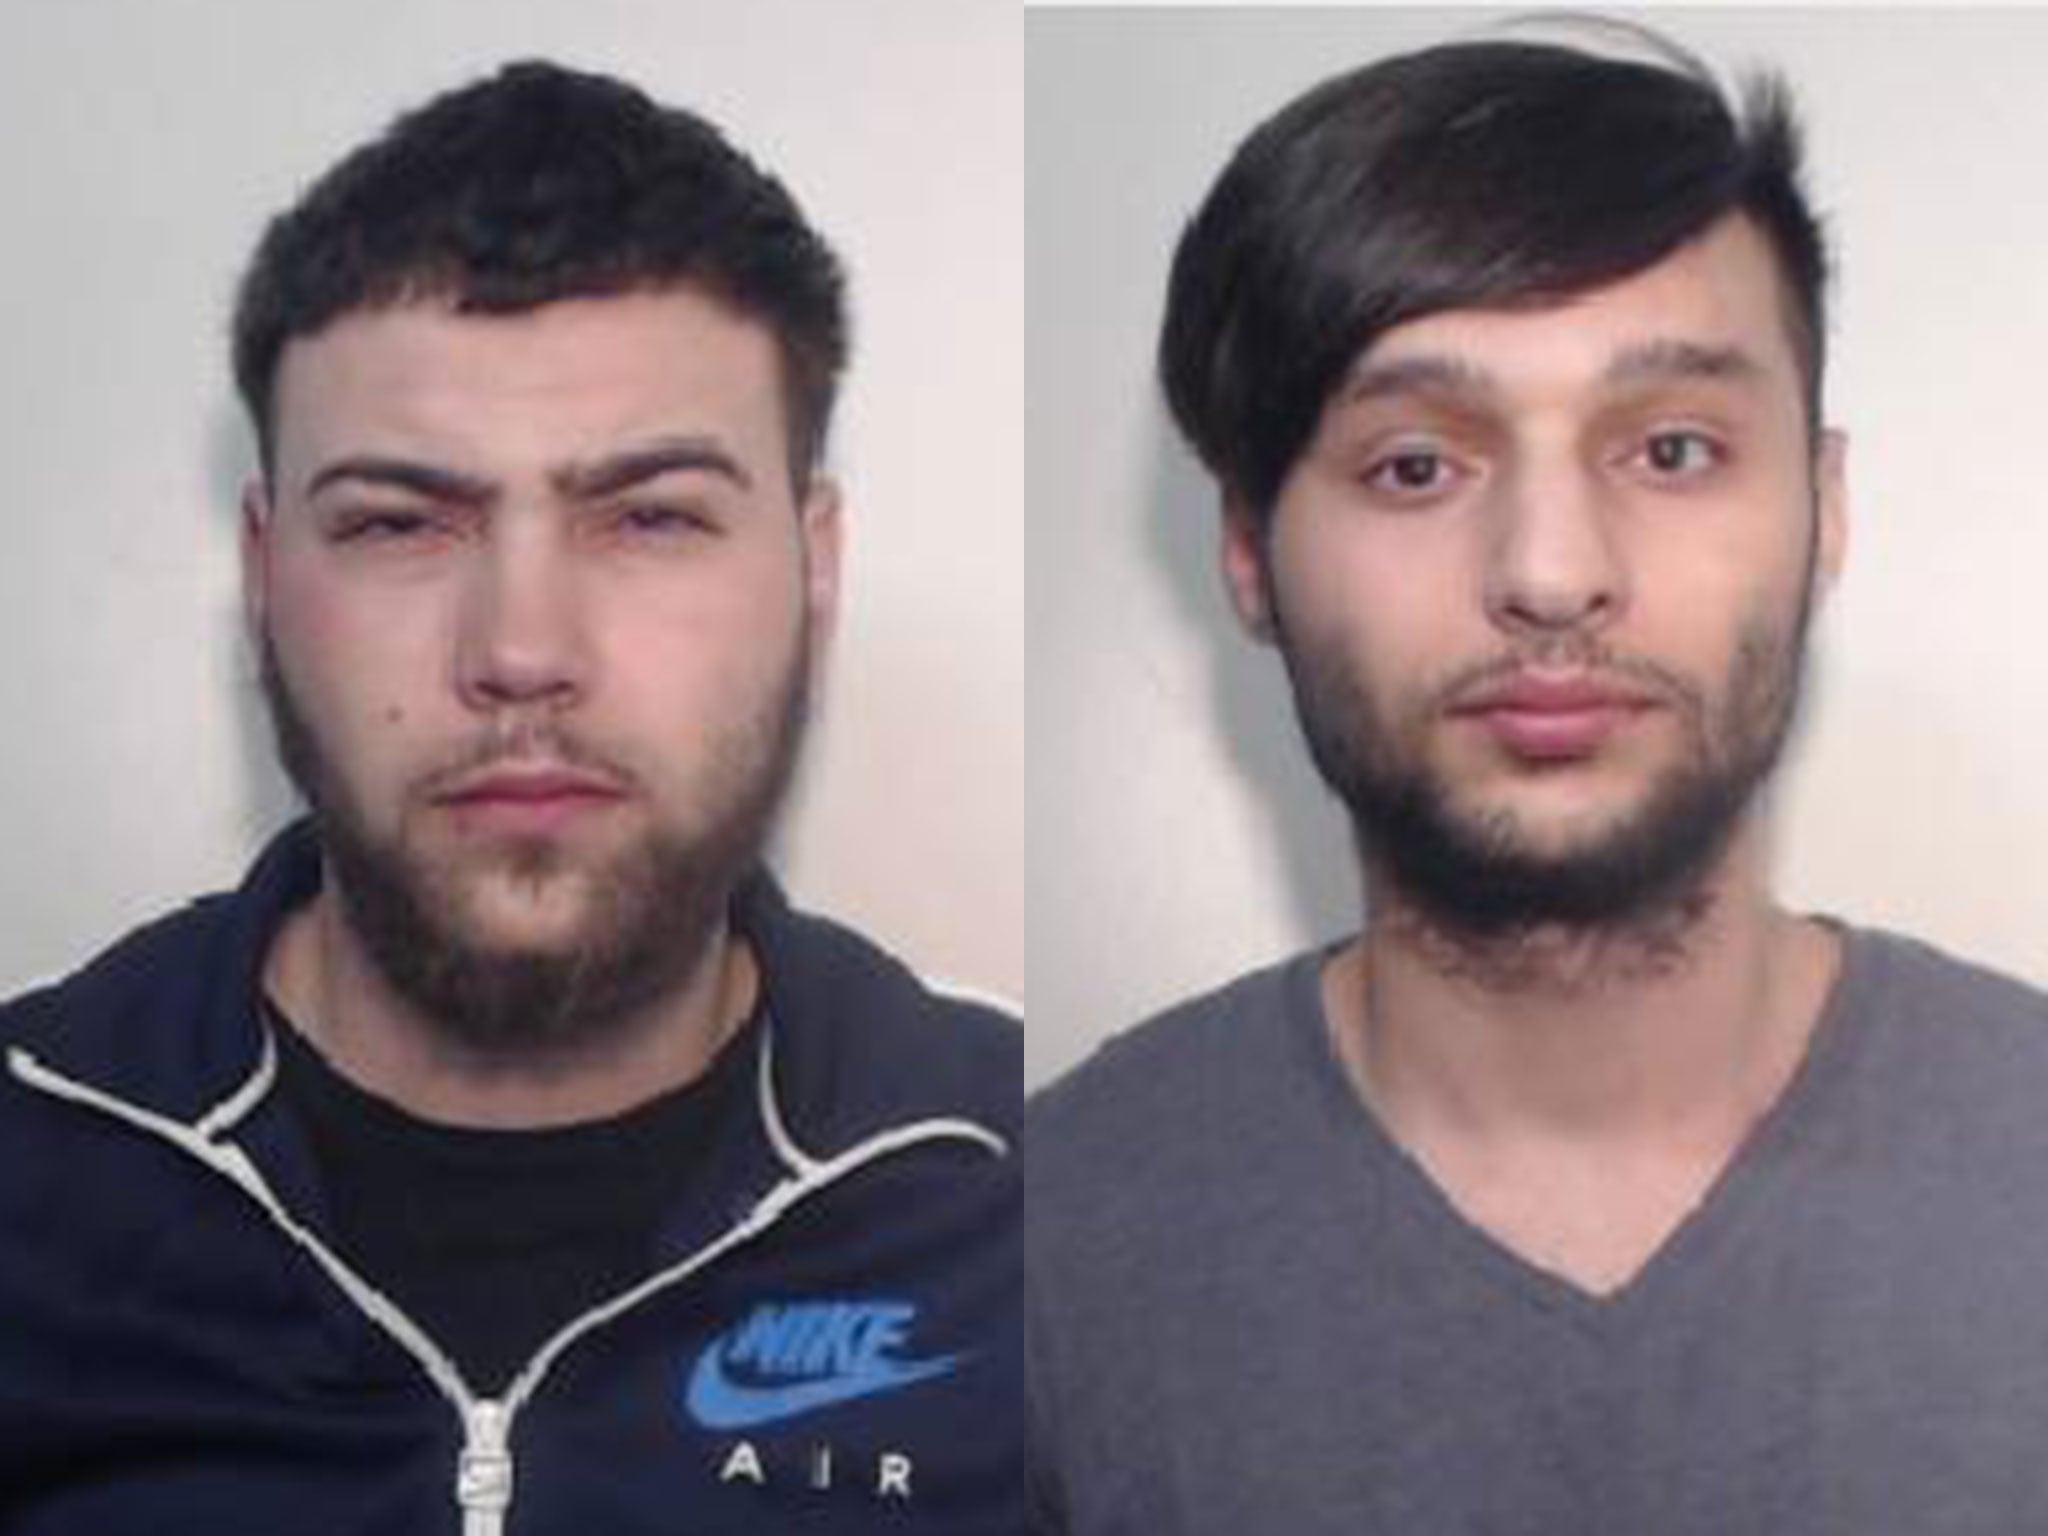 Grooming gang members who targeted girls as young as 12 in Mancheste…